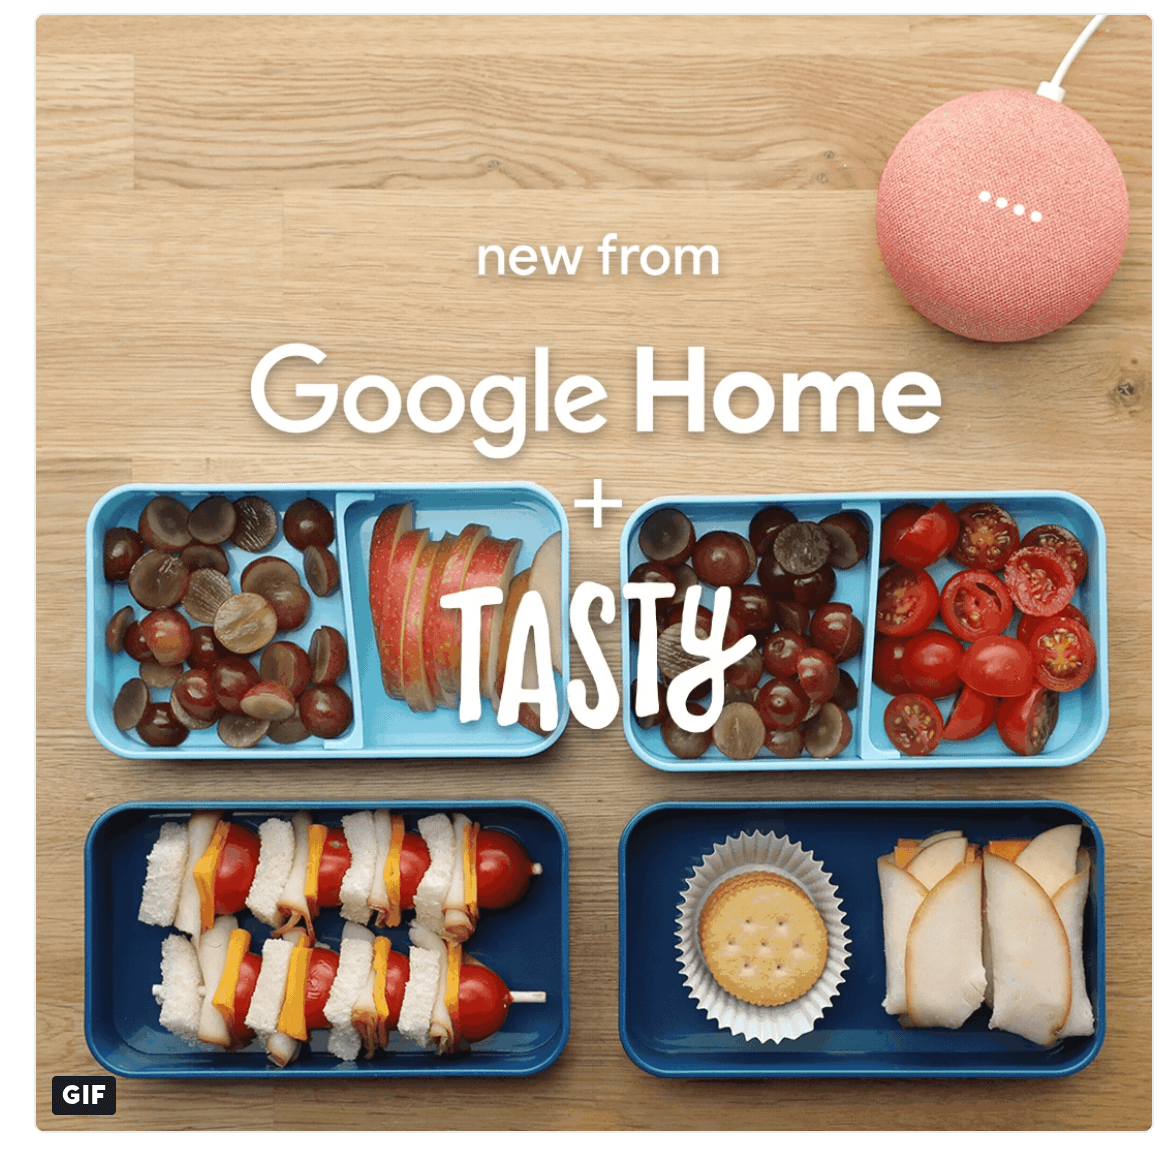 Google Home and Tasty